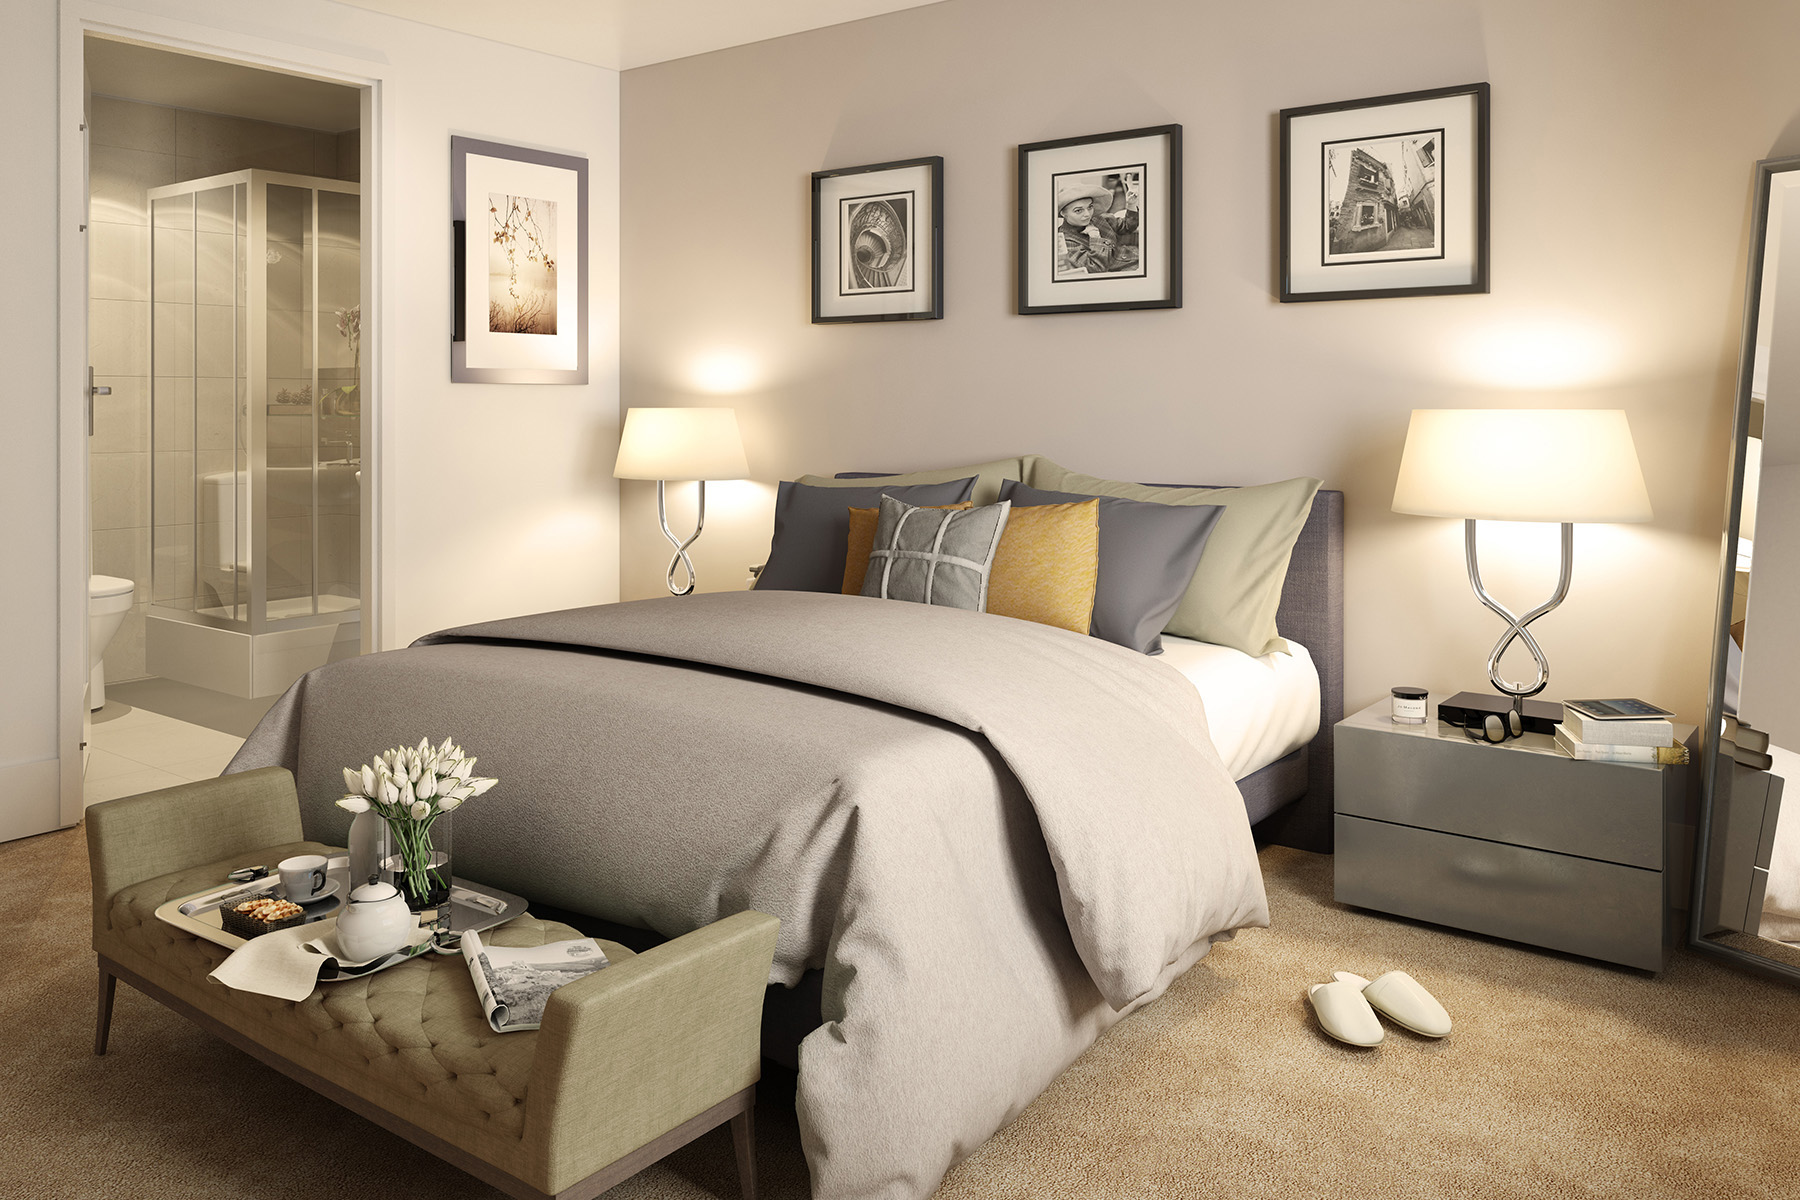 Generic_Type1_Master_Bedroom